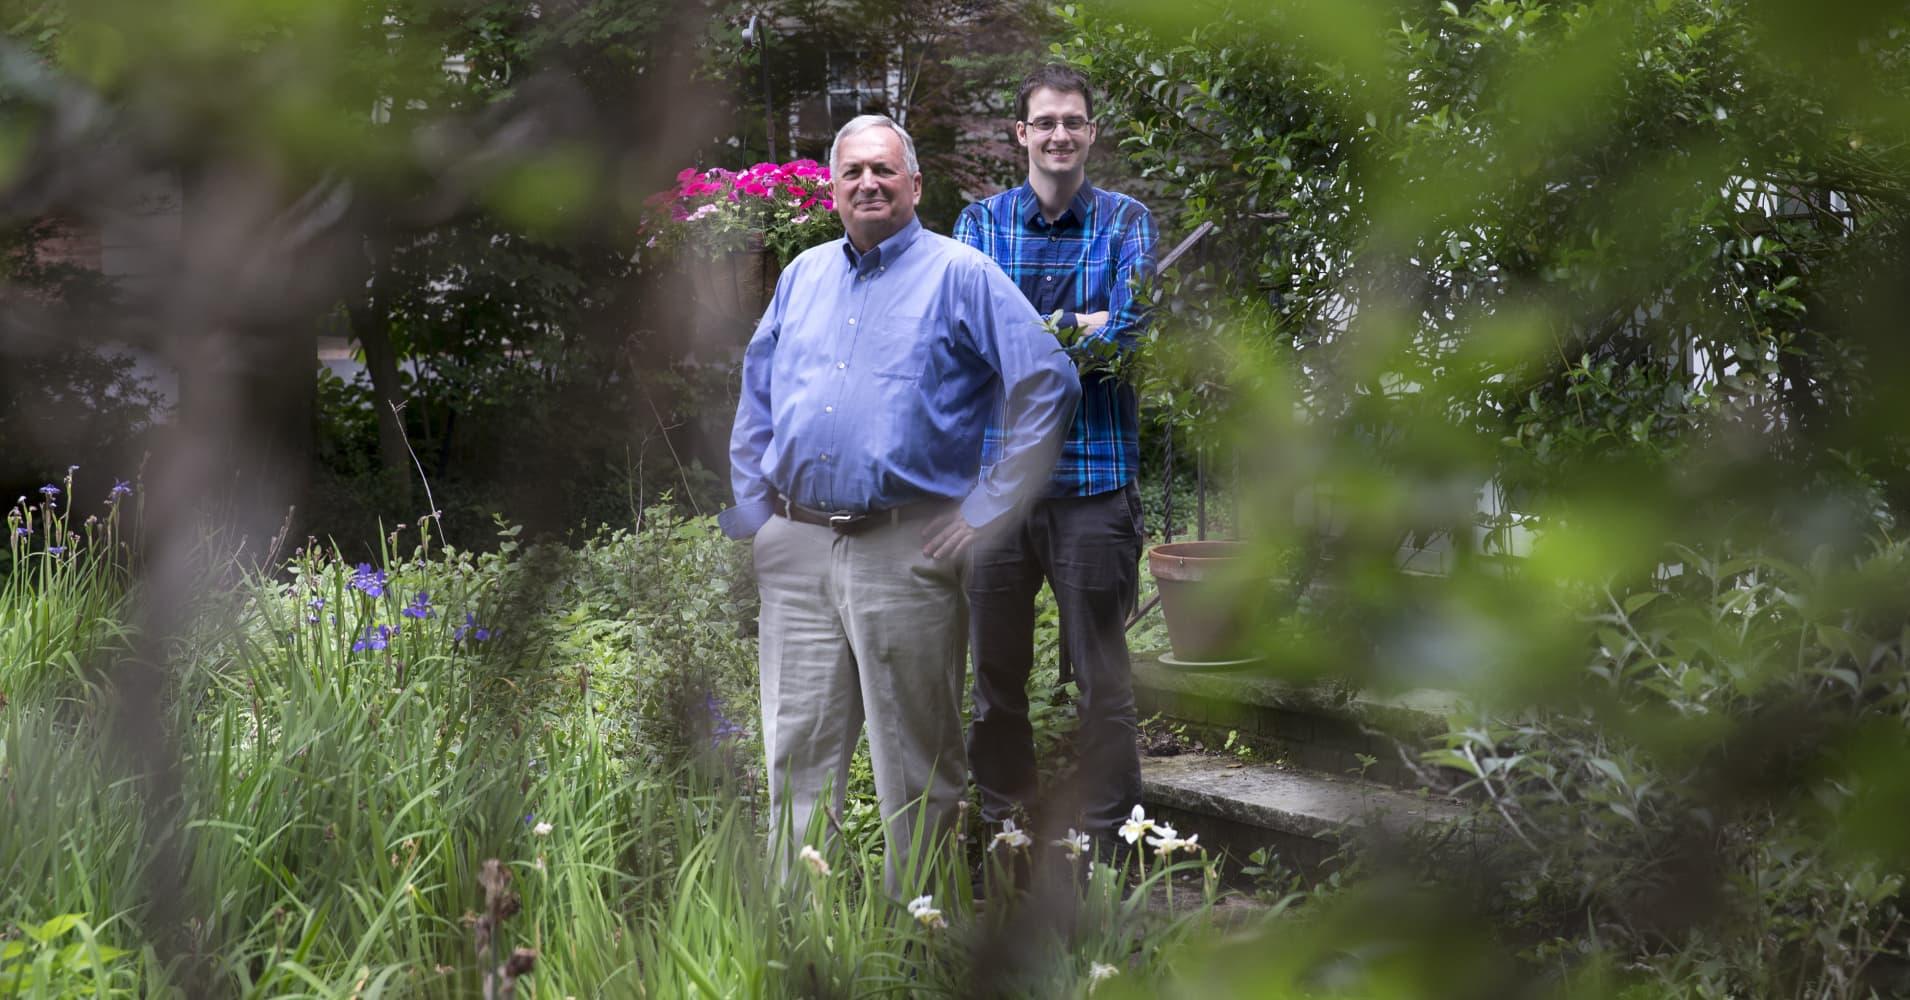 Paul B. Brown and his son Samuel Viscomi in Glen Rock, N.J., June 8, 2017. Brown and his wife have started giving their four adult children their inheritance, which they believe is more useful to their children now than it will be later on.